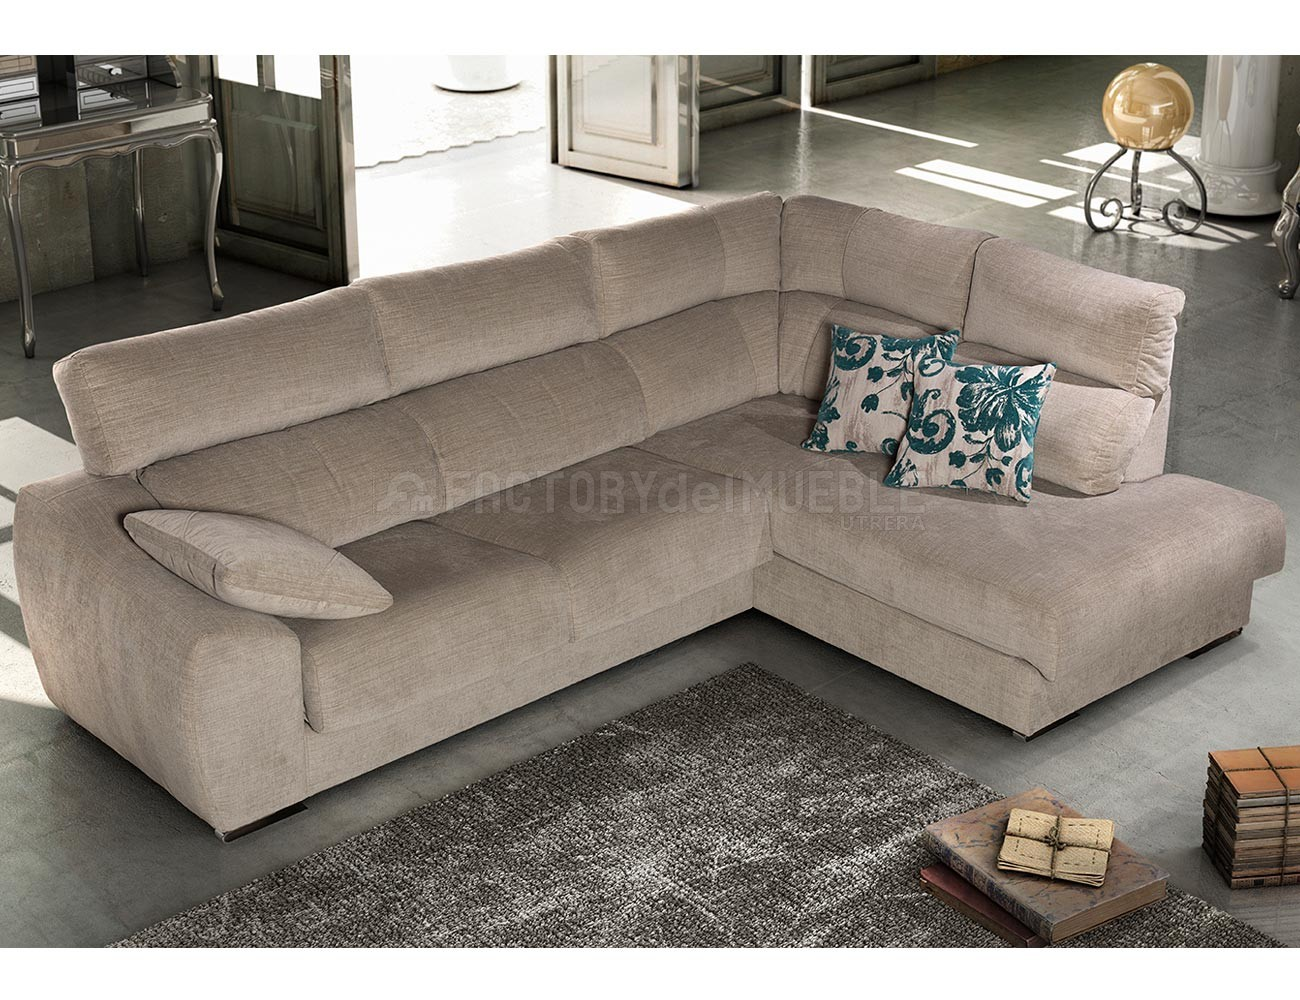 Sofa chaiselongue rincon moderno forma18